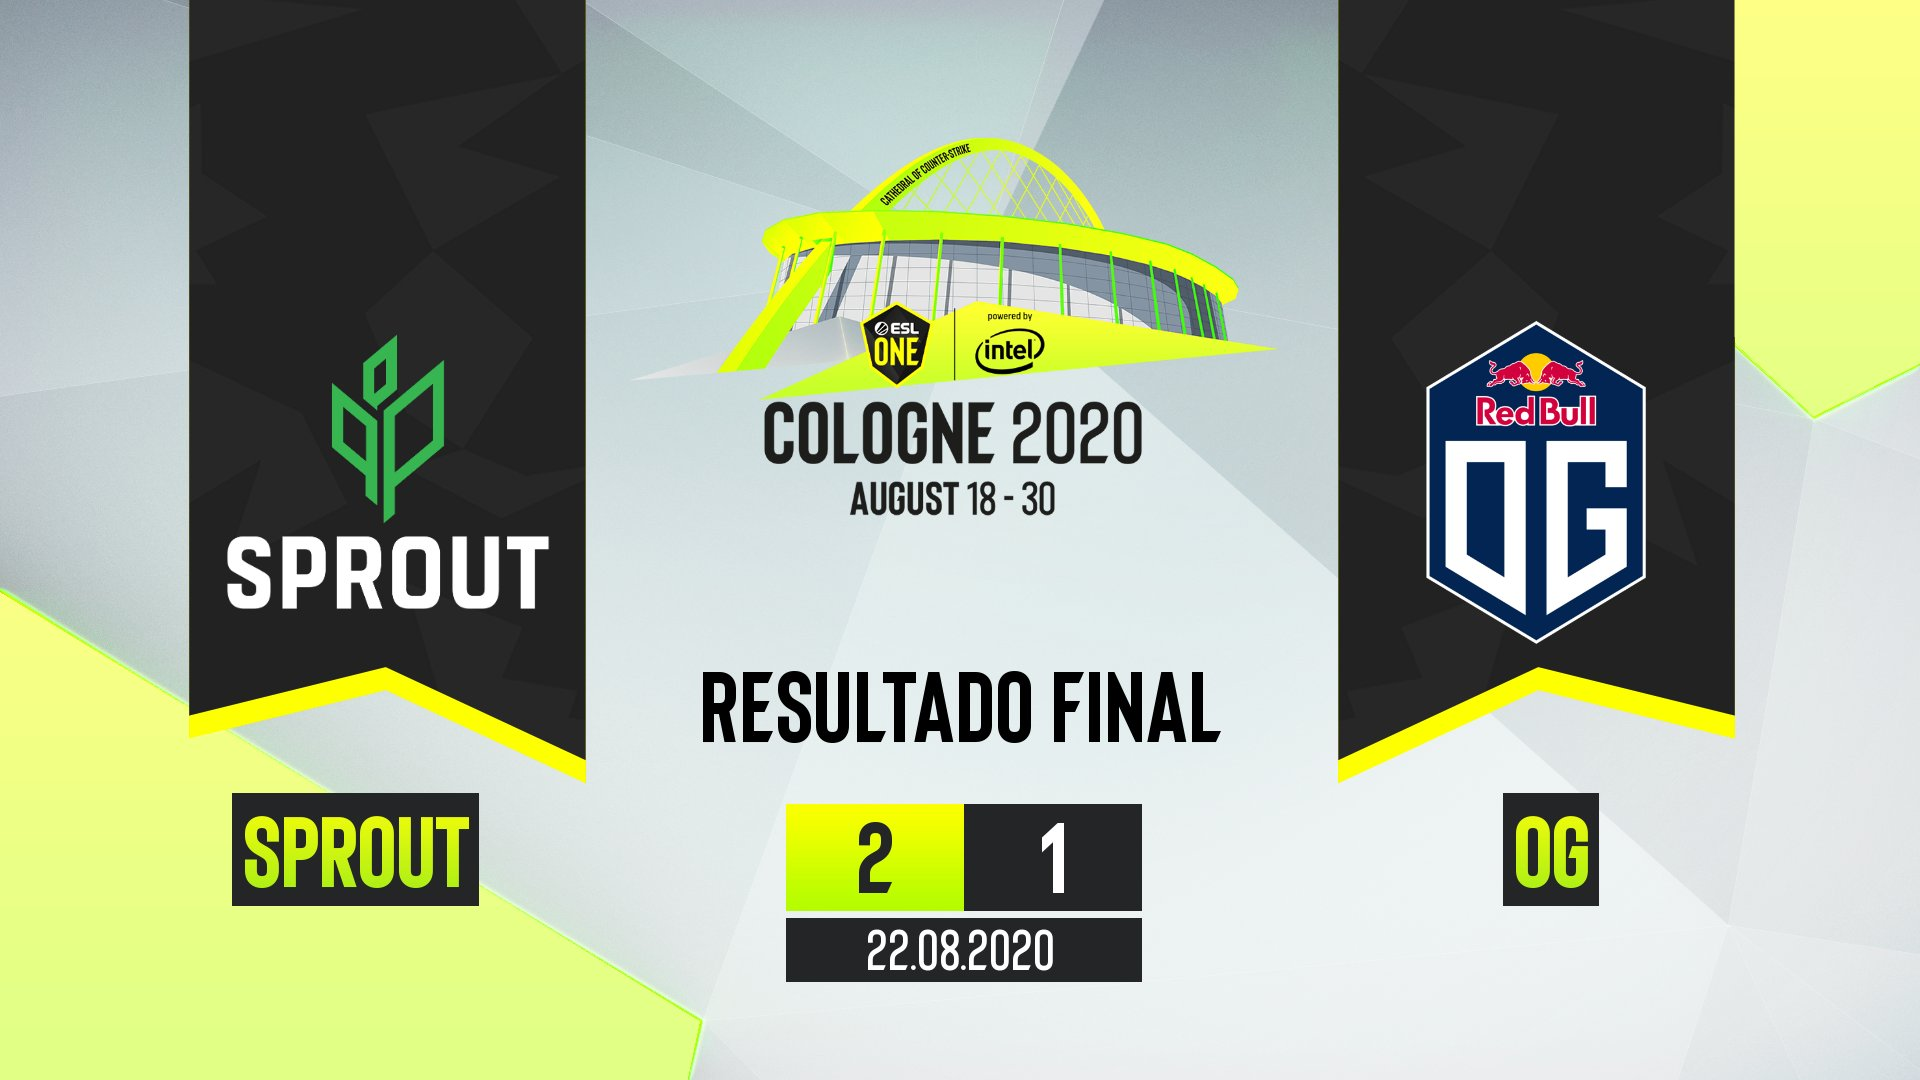 Sprout vence e é a primeira classificada aos playoffs